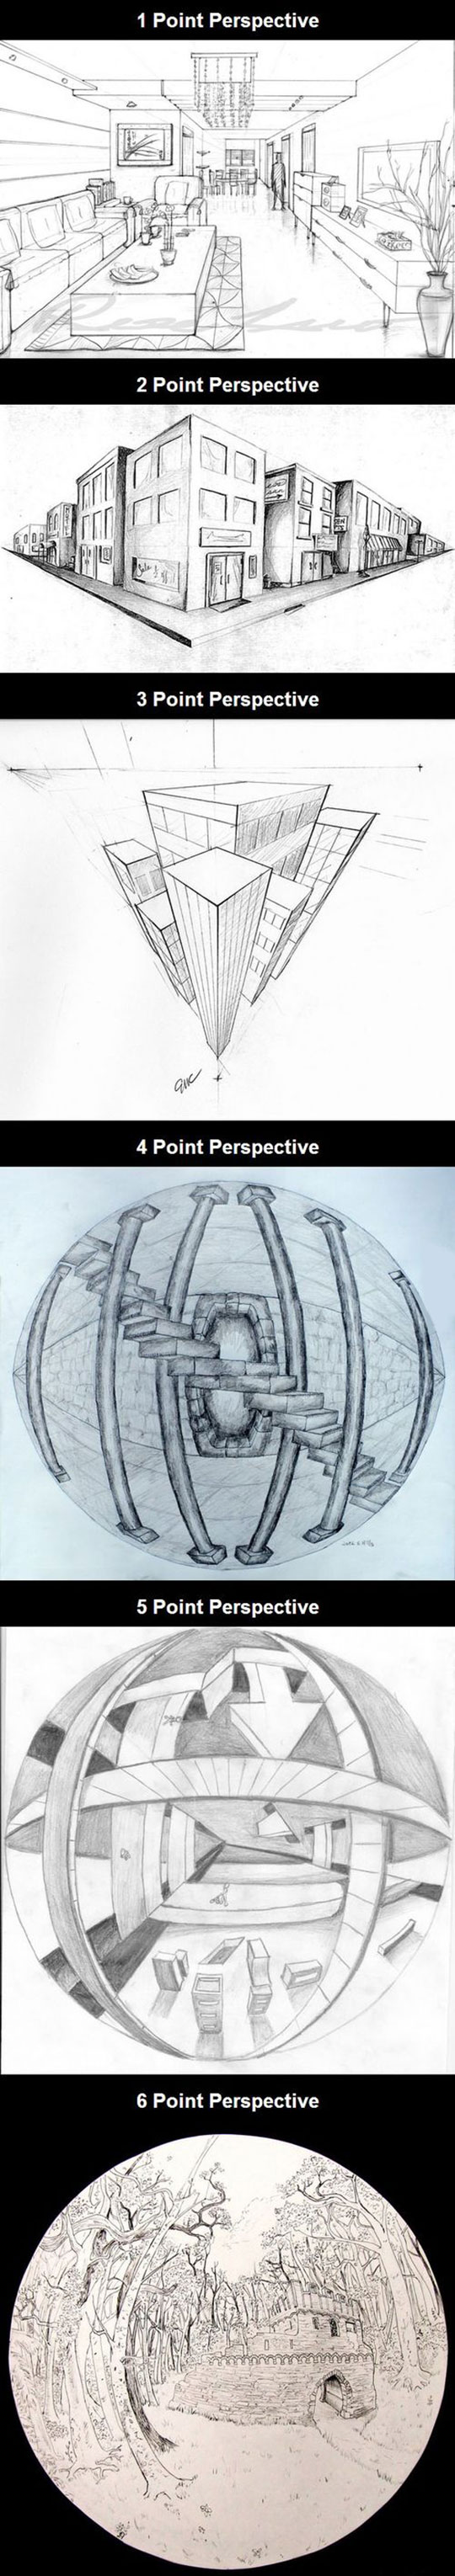 Perspective Points